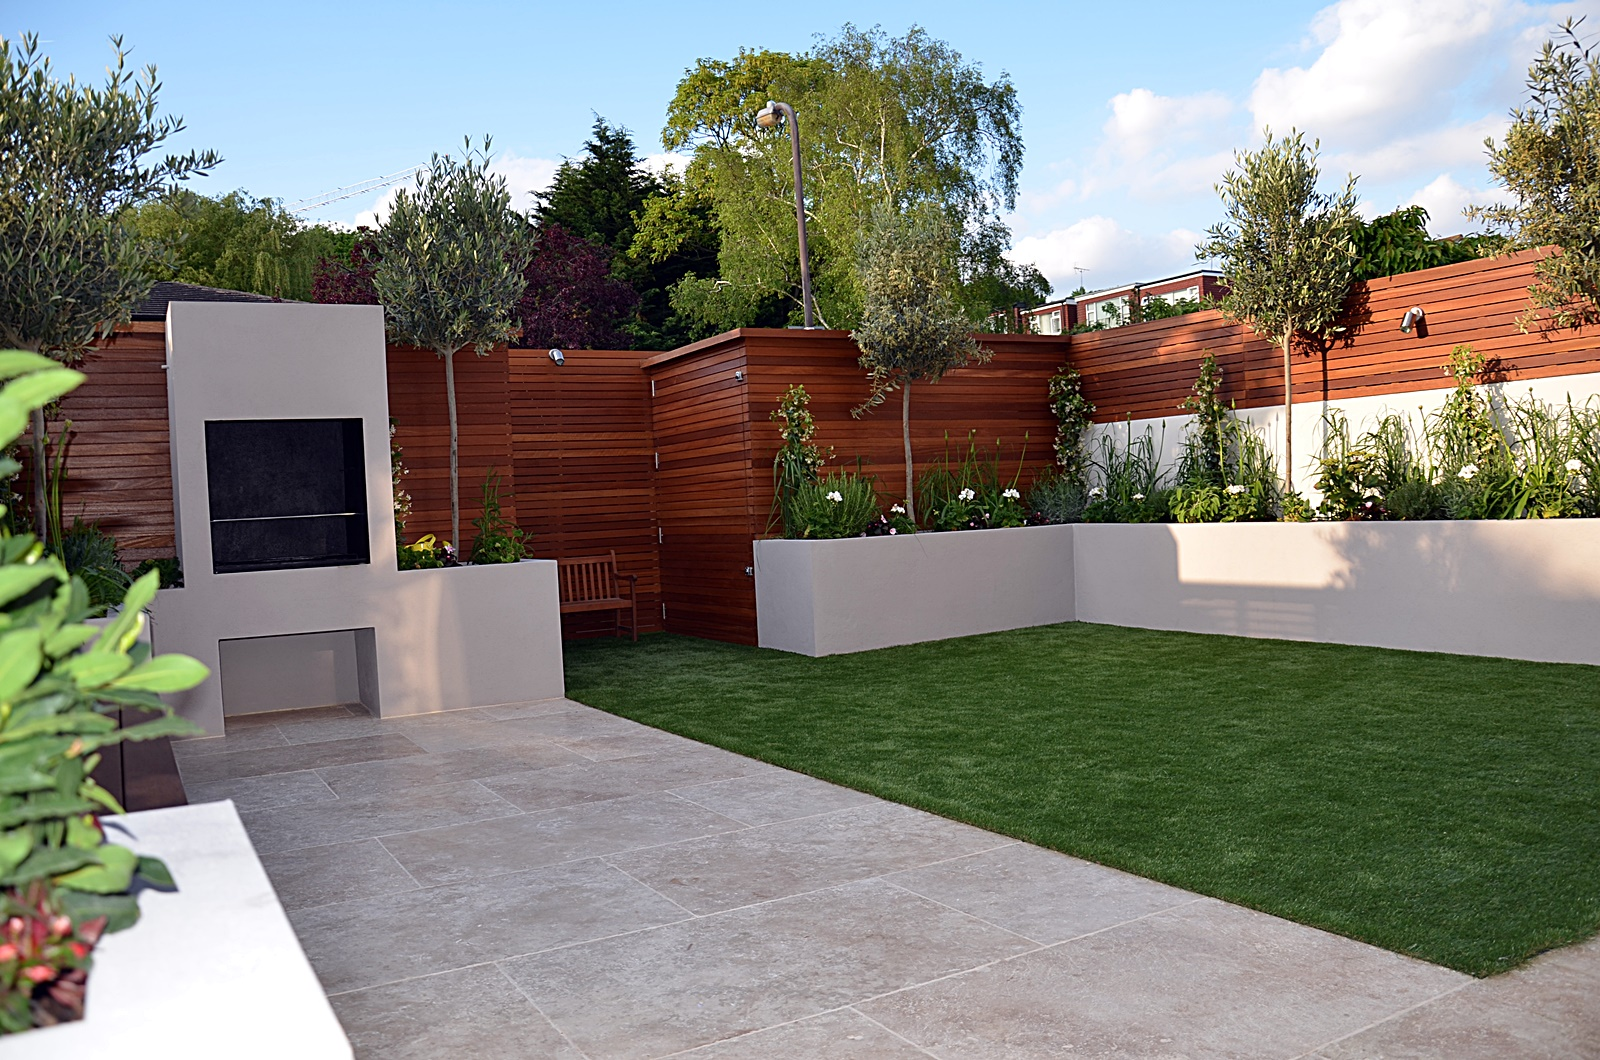 Modern garden design fulham chelsea clapham battersea for Modern backyard ideas